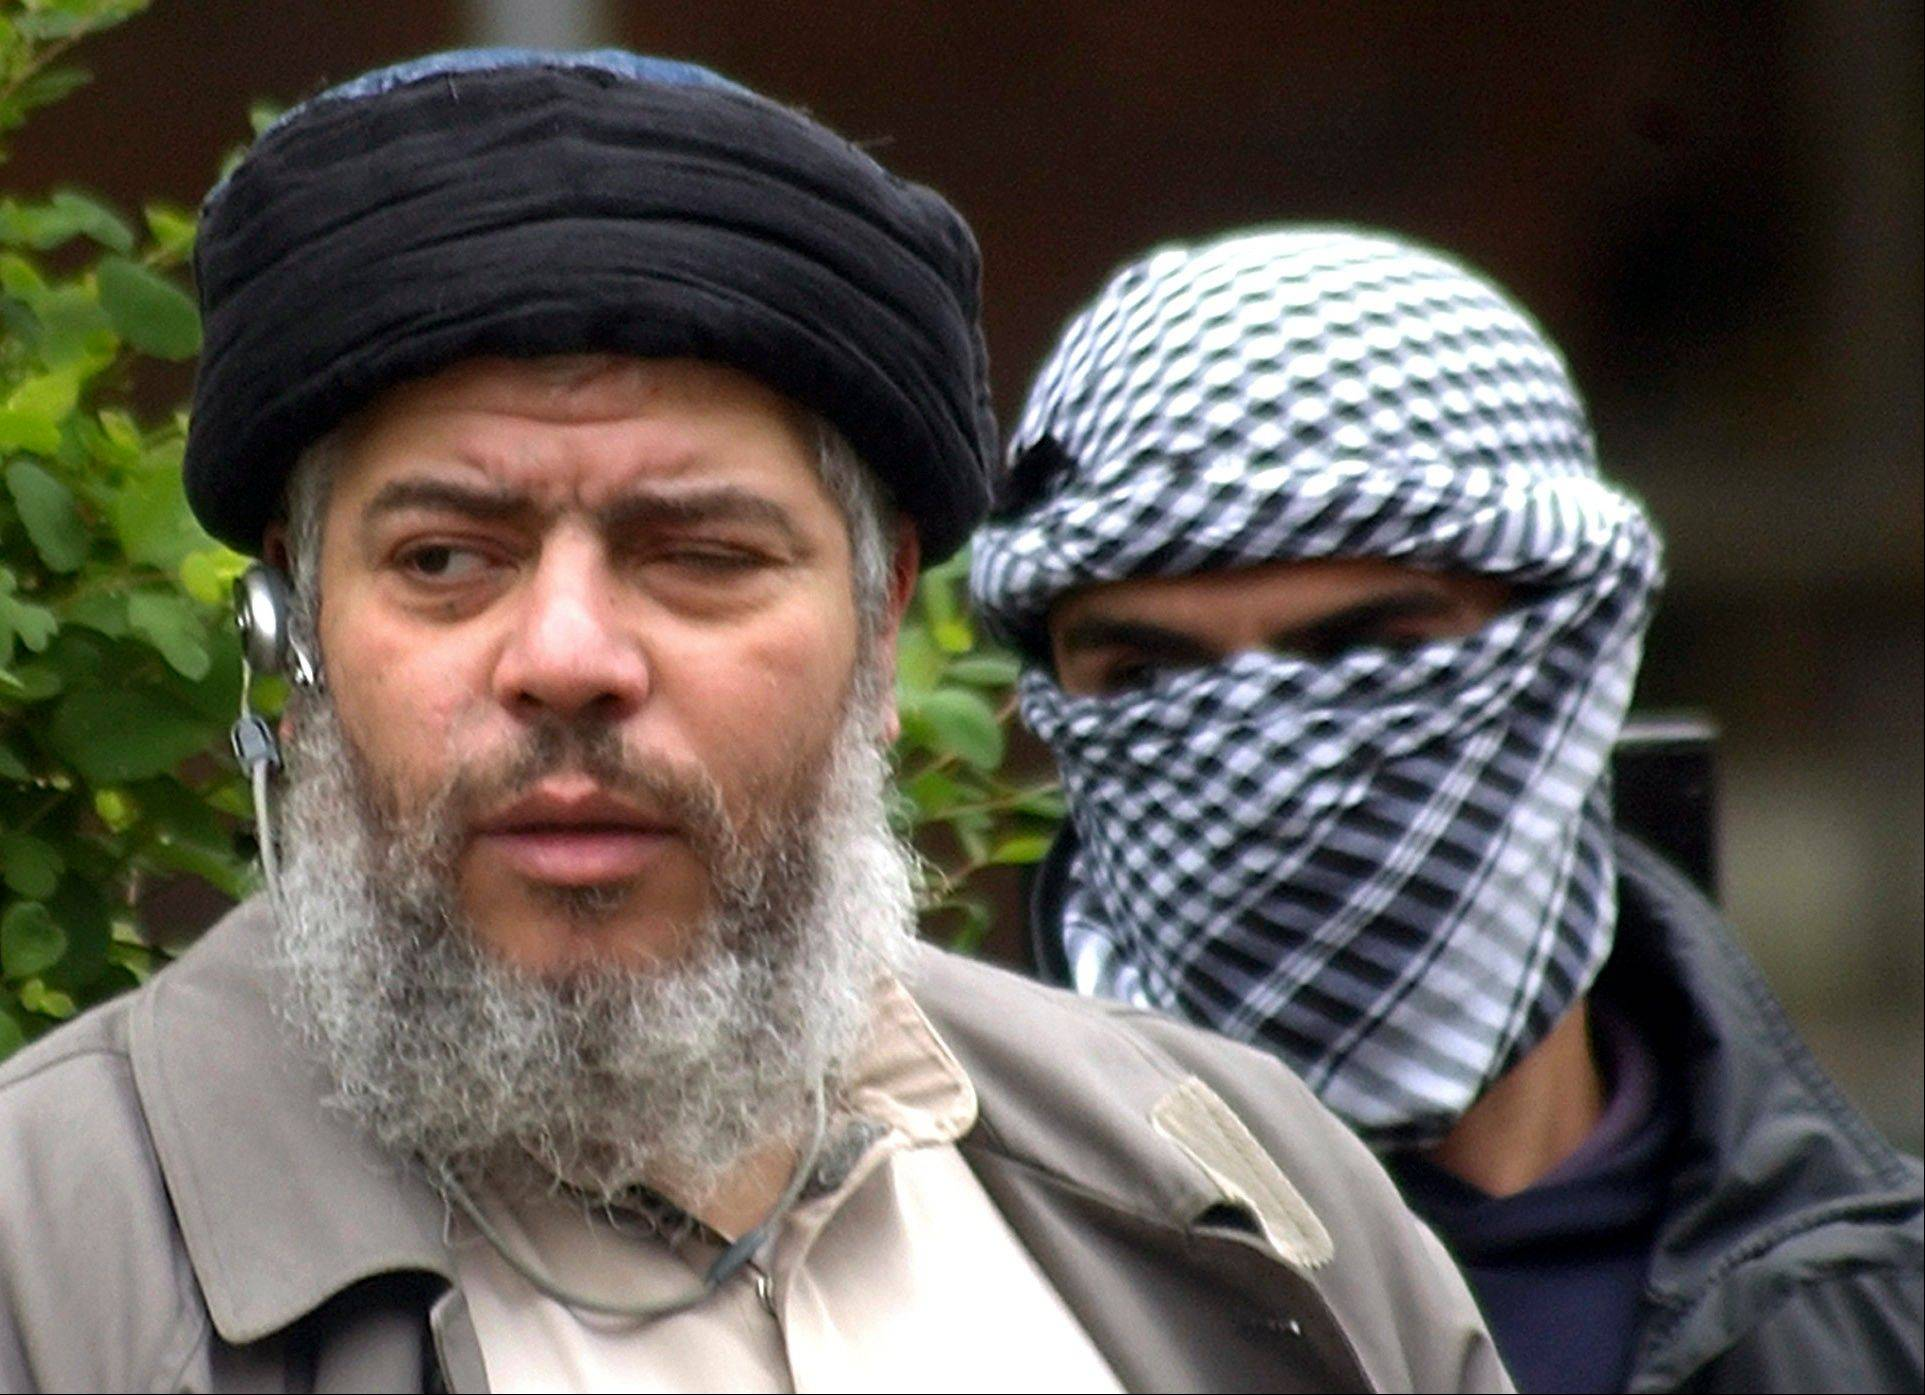 This 2004 file photo shows Muslim cleric Abu Hamza al-Masri, as he arrives with a masked bodyguard, right. A British court ruled Friday that al-Masri and four other terror suspects can be extradited immediately to the U.S. to face charges there.